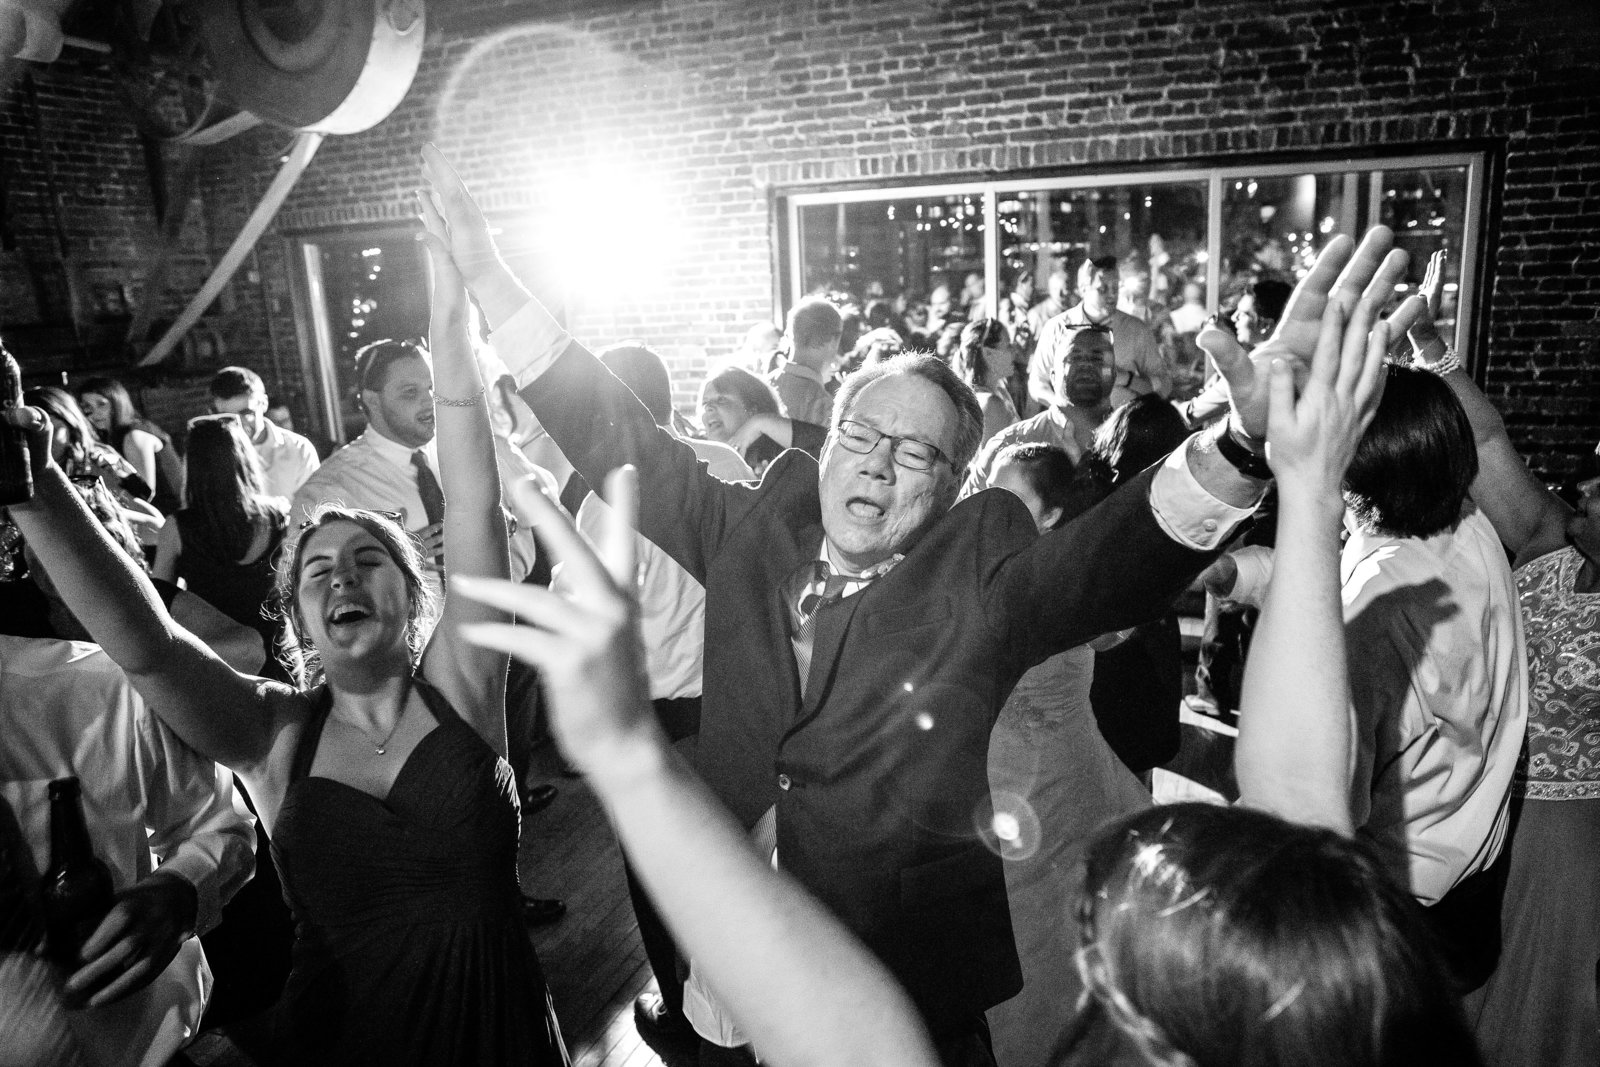 Cannery-One-Wedding-Reception-Father-of-the-Bride-Dancing